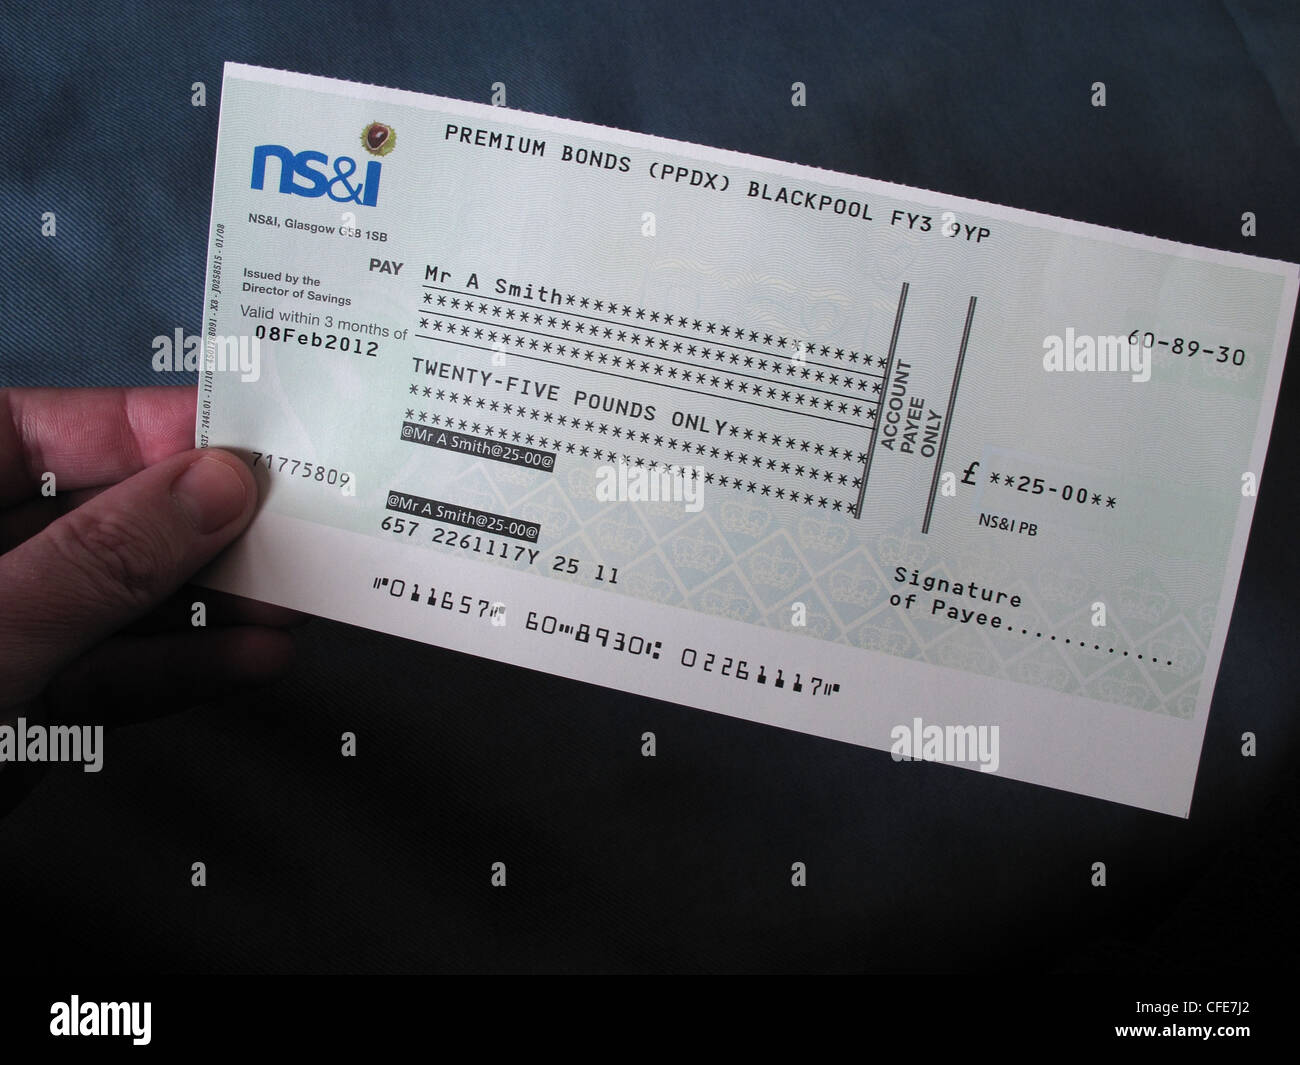 NS&I,premium,bond,cheque,held,in,a,hand,of,the,winner,check,lottery,win,British,National,Savings,ERNIE,E.R.N.I.E.,gotonysmith,£25,25,pound,pounds,premiumbond,investment,investments,Electronic,Random,Number,Indicator,Equipment,bonds,Blackpool,hands,holding,a,numbers,cashed,cashing,odds,prize,GPO,General Post Office UK GB Great British English luck lucky,gotonysmith,Buy Pictures of,Buy Images Of